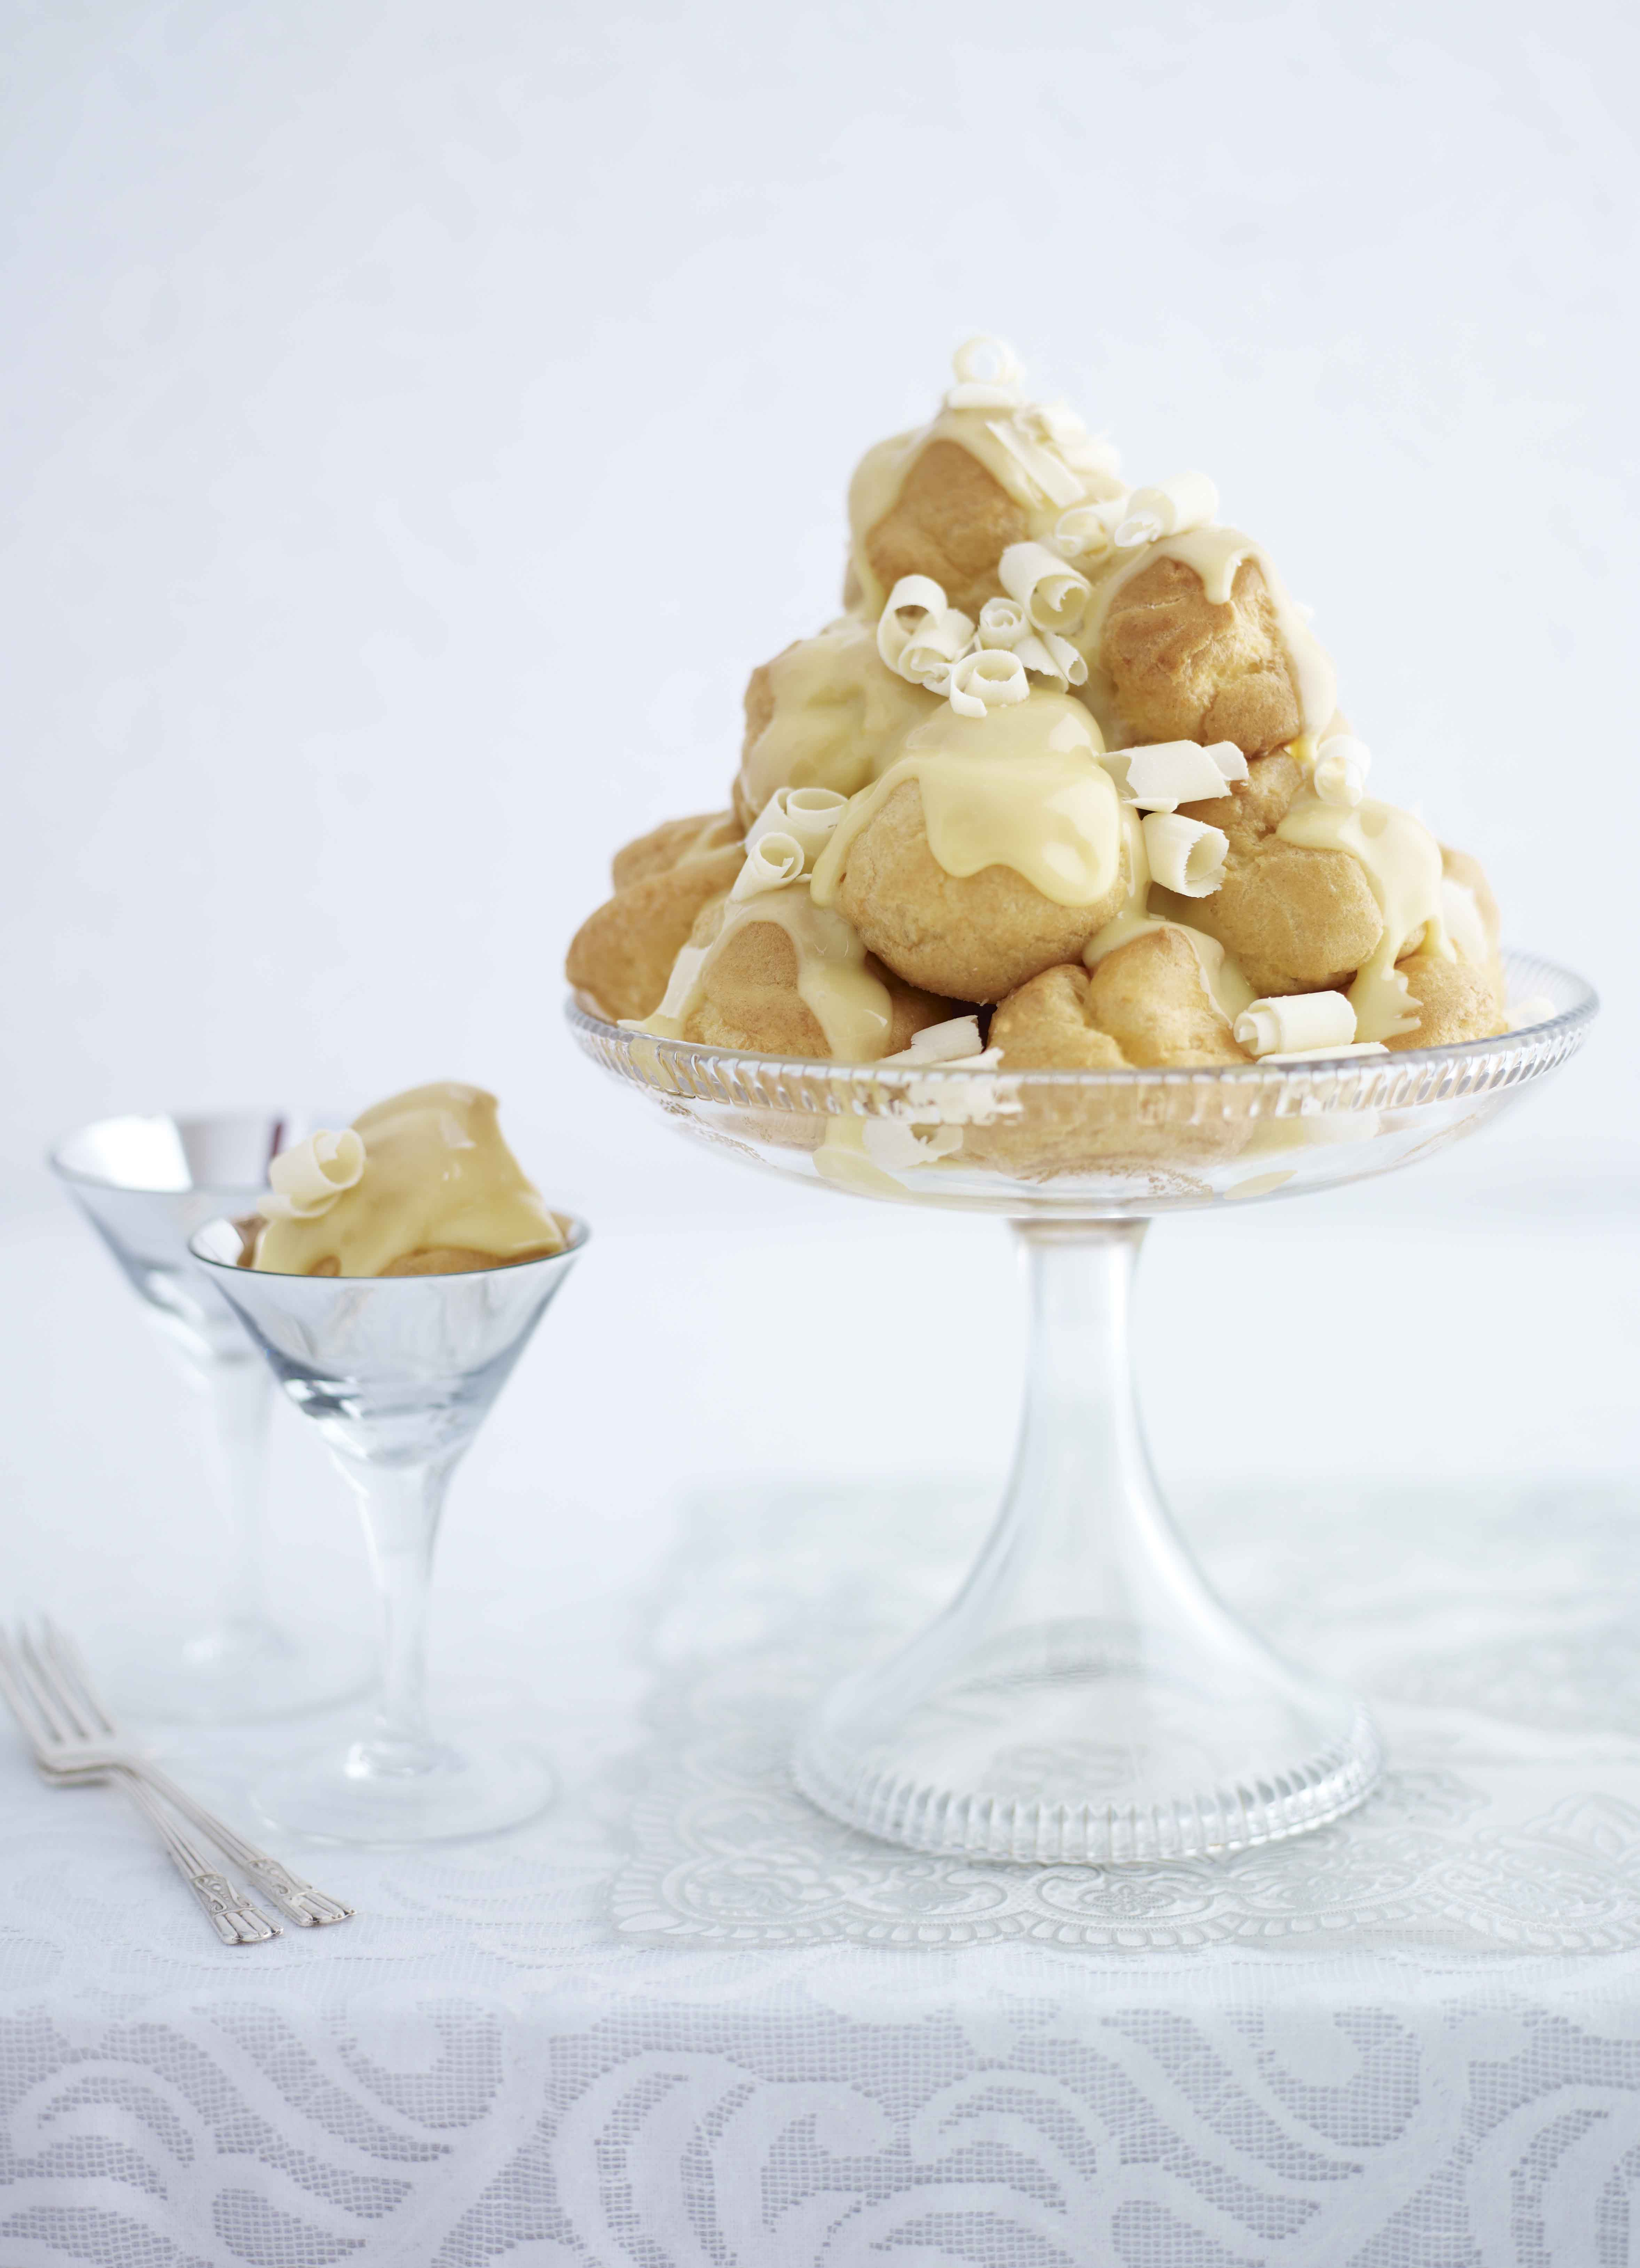 Lavender and White Chocolate Profiteroles Recipe